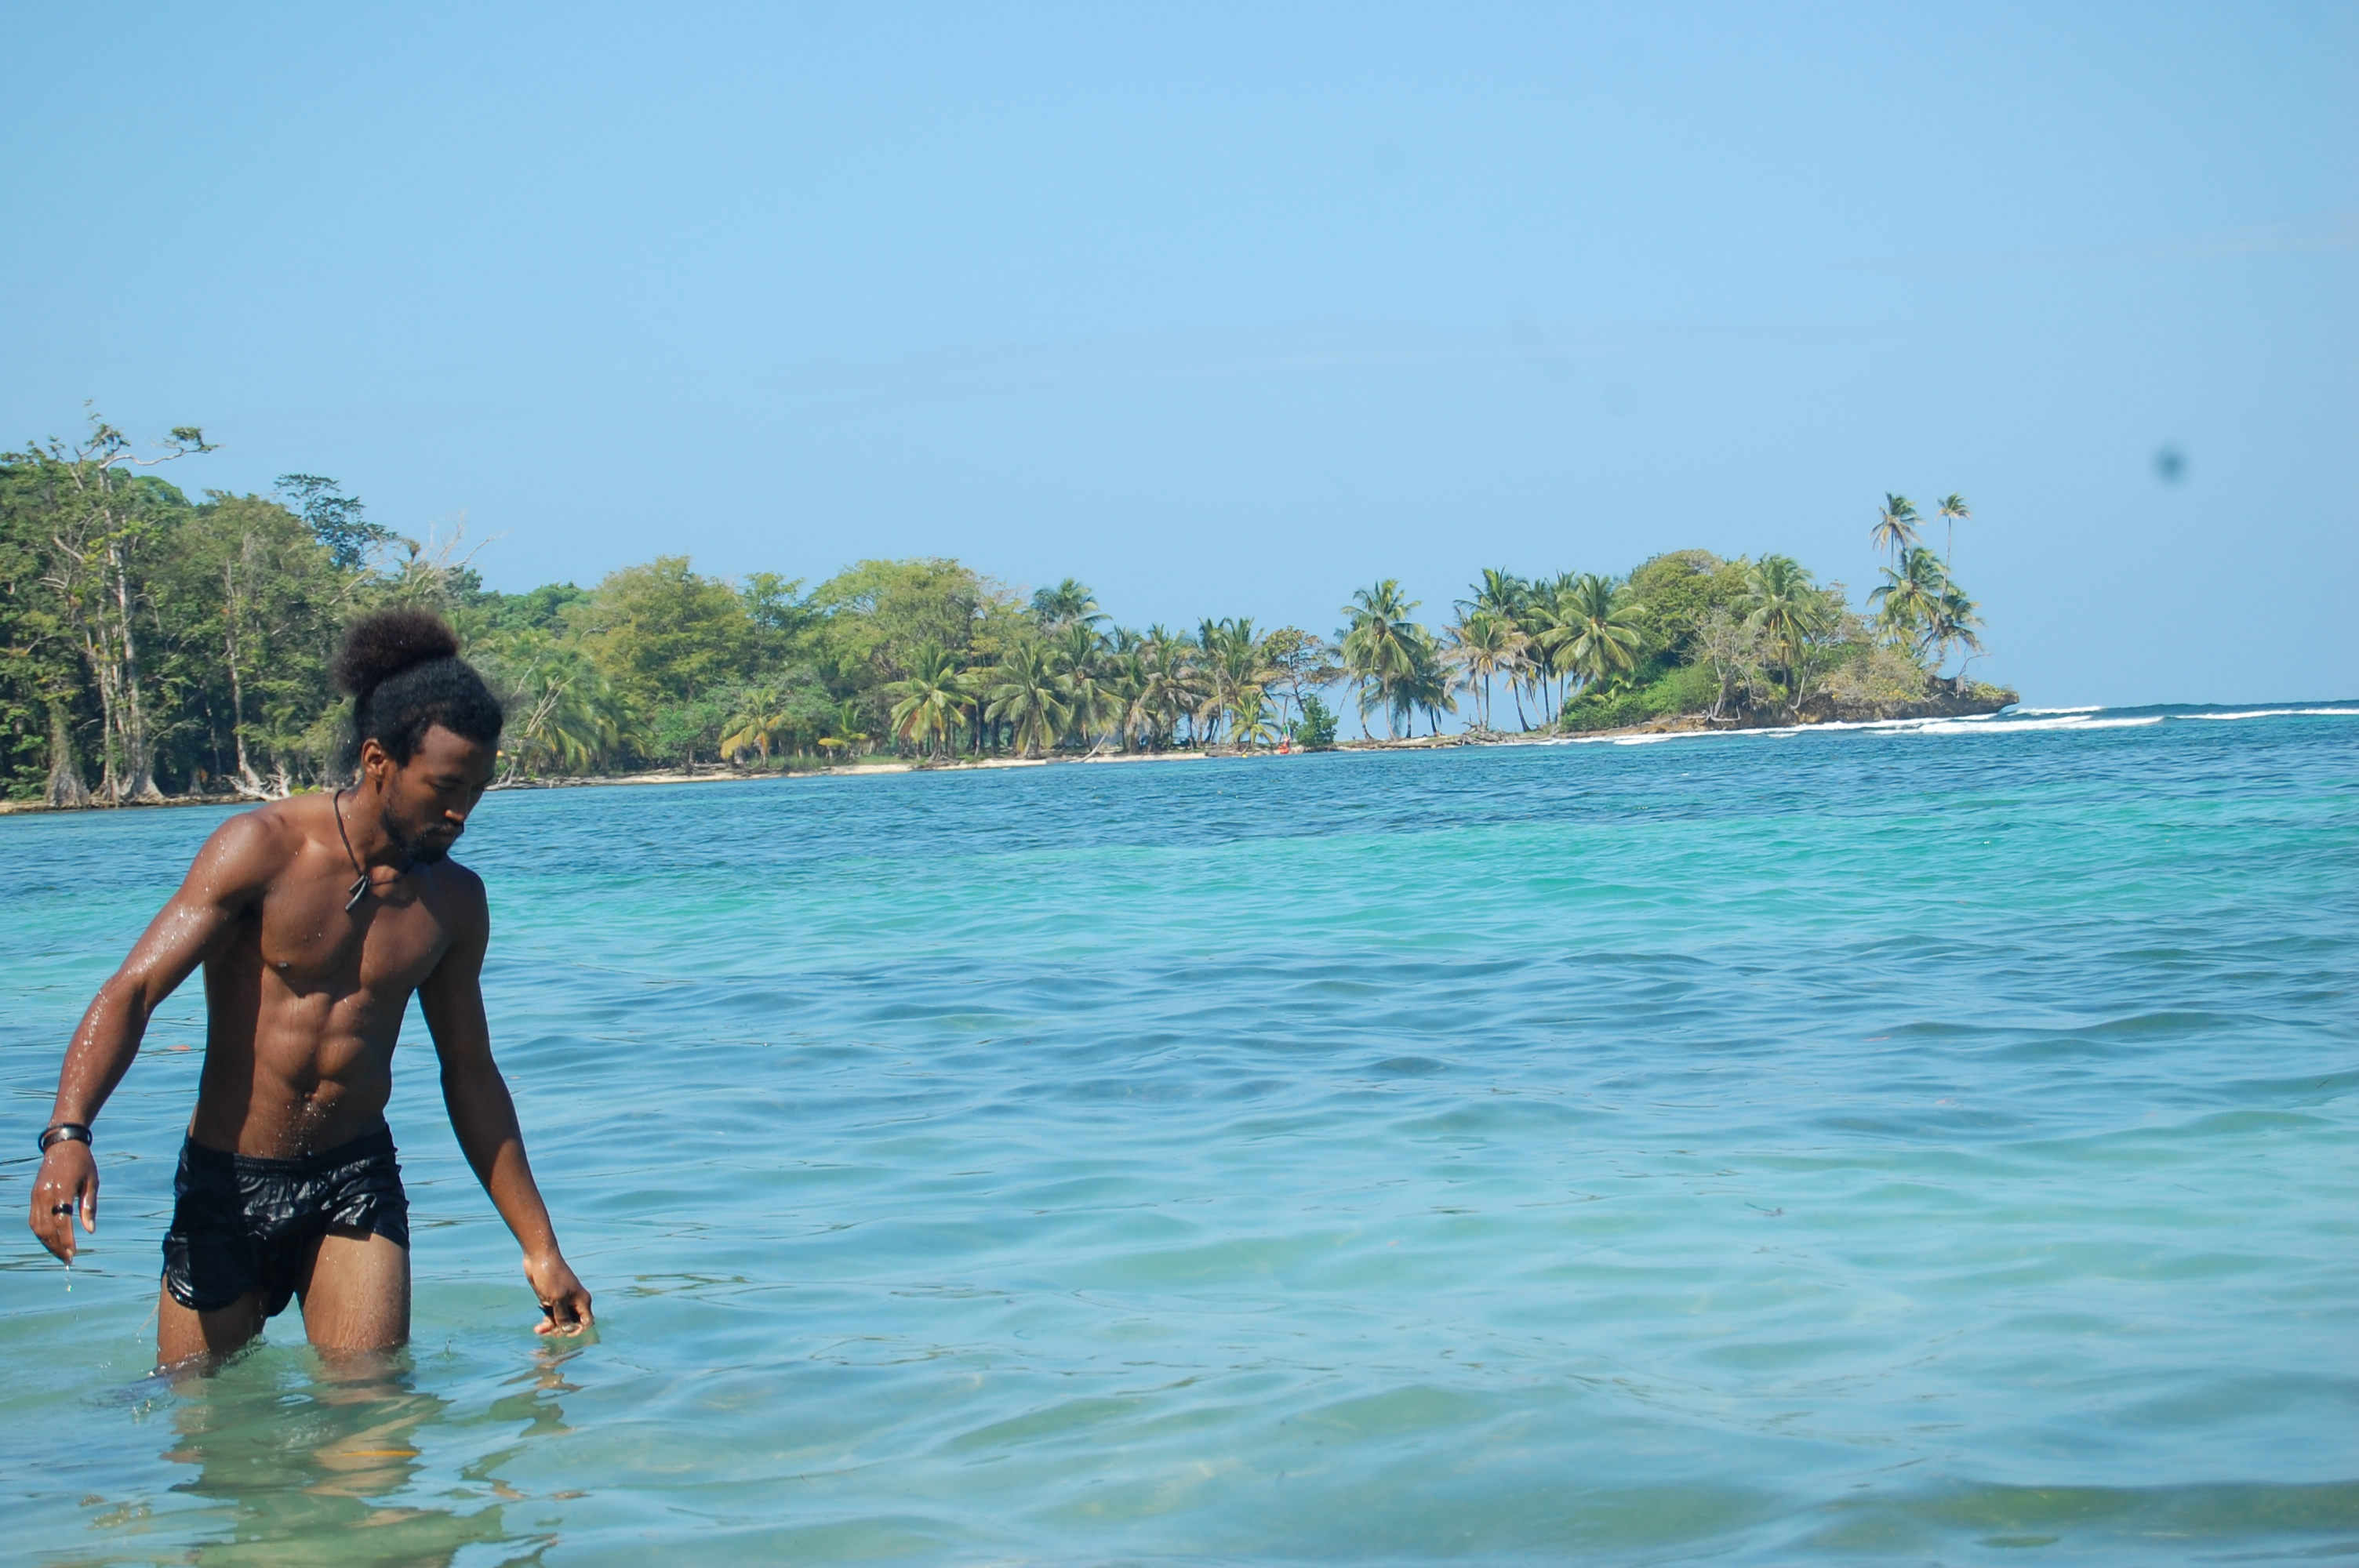 The beaches of Bocas del Toro are filled with beauty!